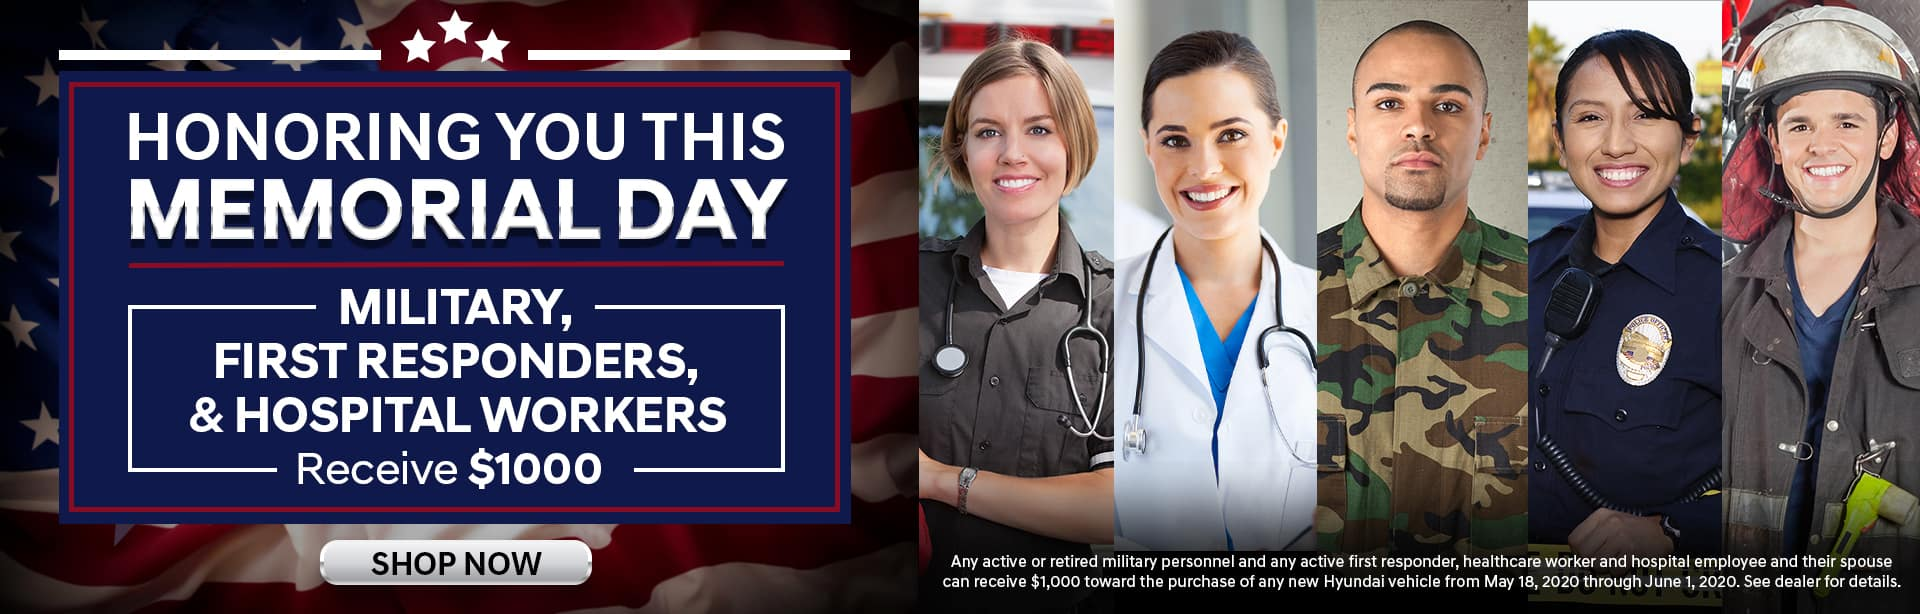 Memorial Day First Responder Offer at Ed Voyles Hyundai in Smyrna, GA